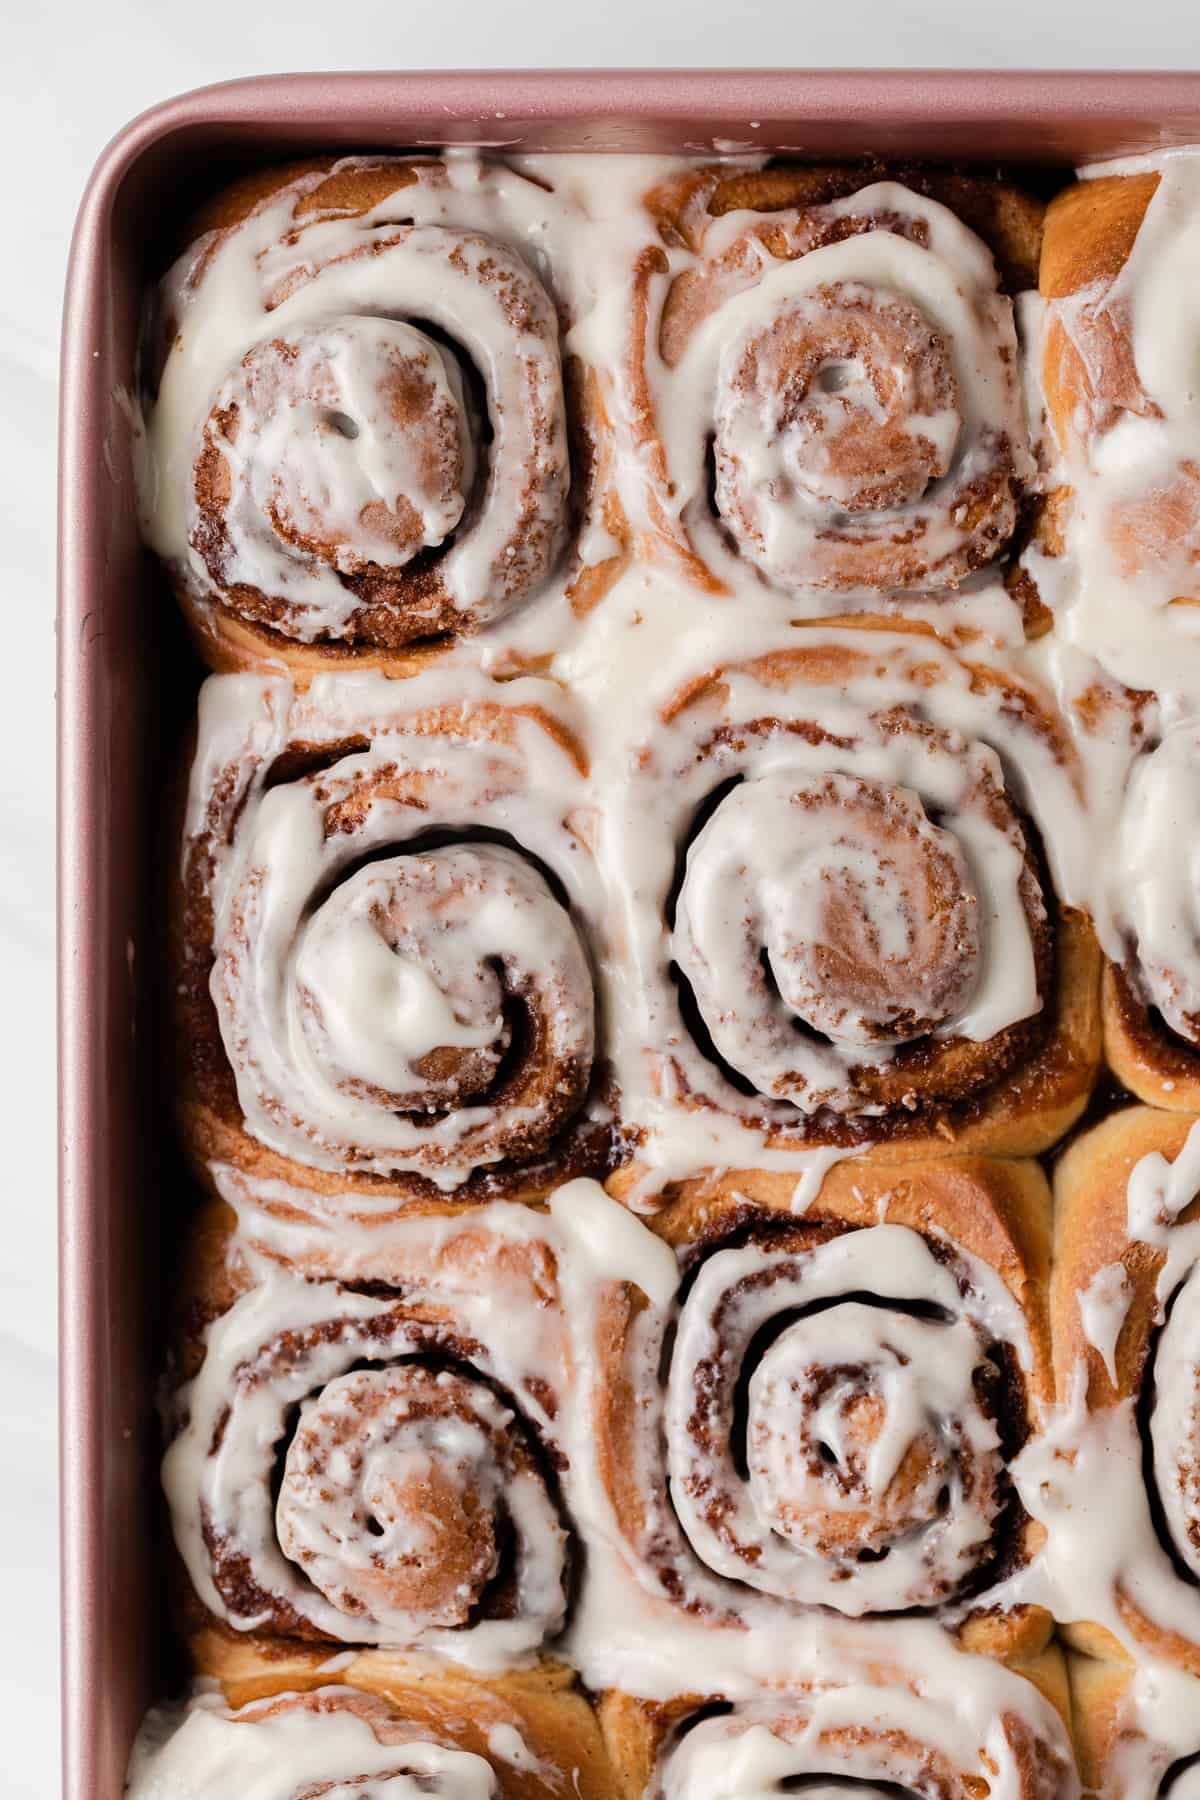 overhead of iced cinnamon rolls in a pink baking pan